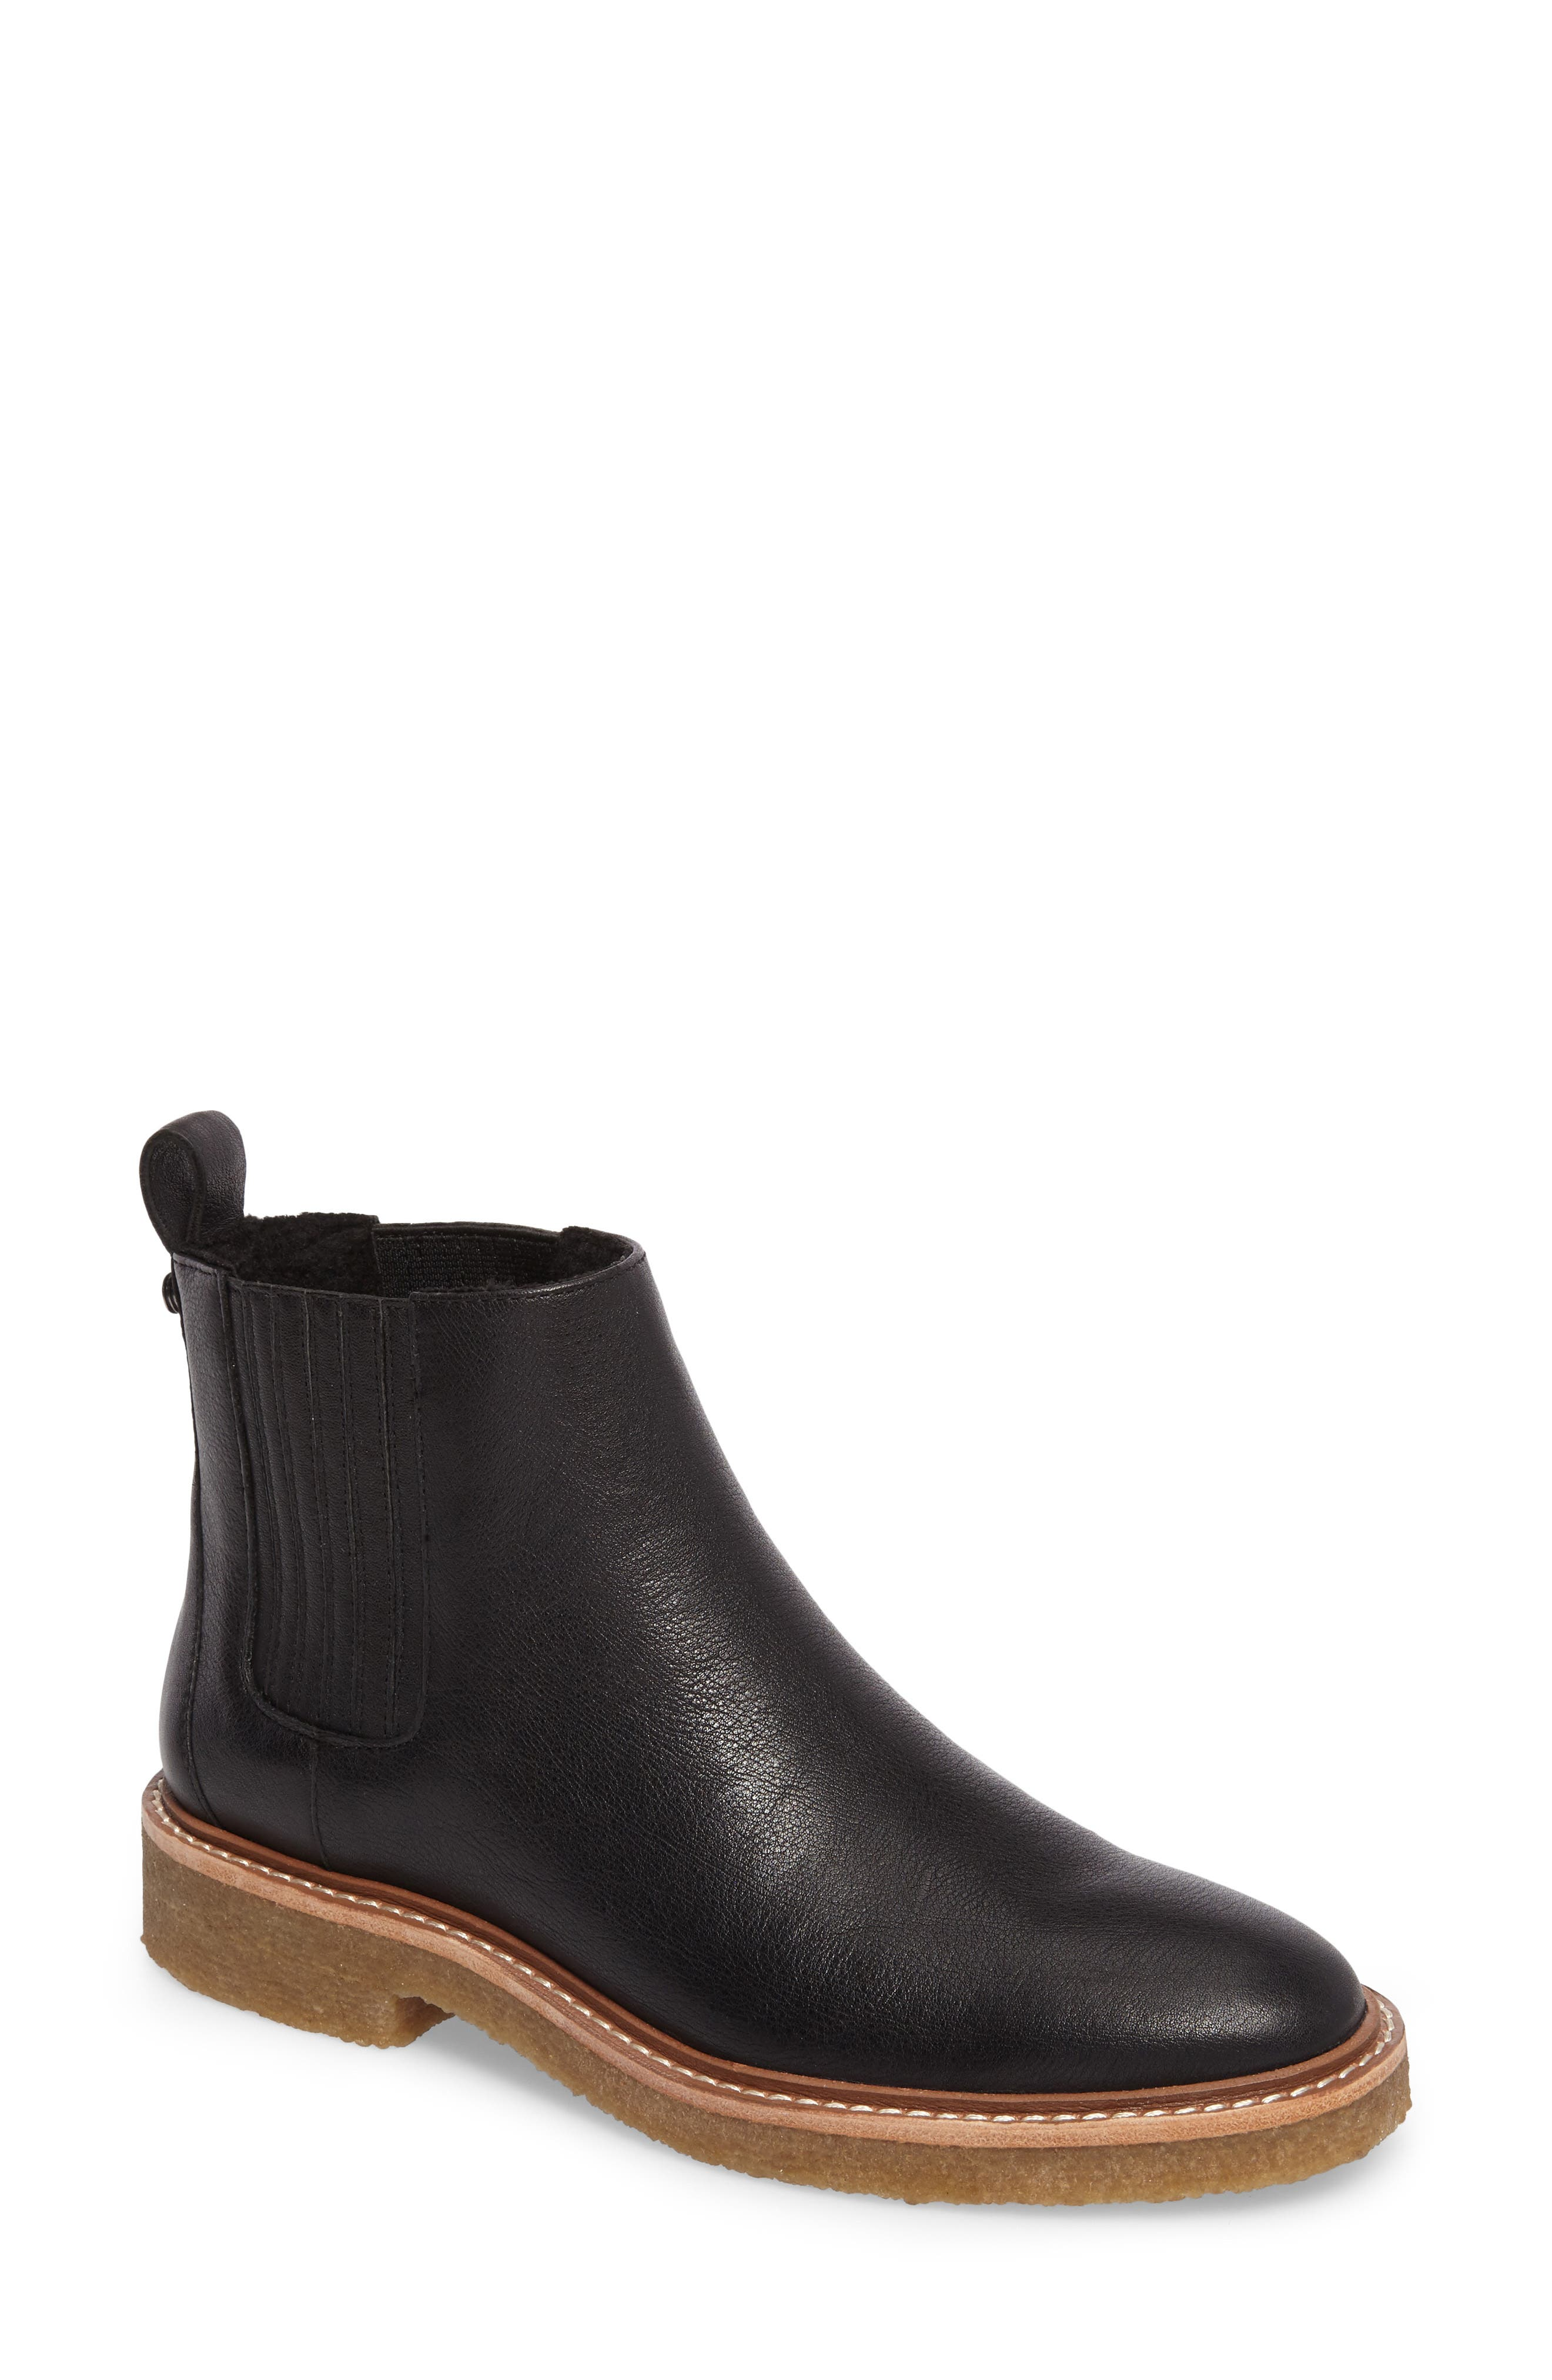 Chelsea Faux Shearling Lined Boot,                         Main,                         color, BLACK LEATHER